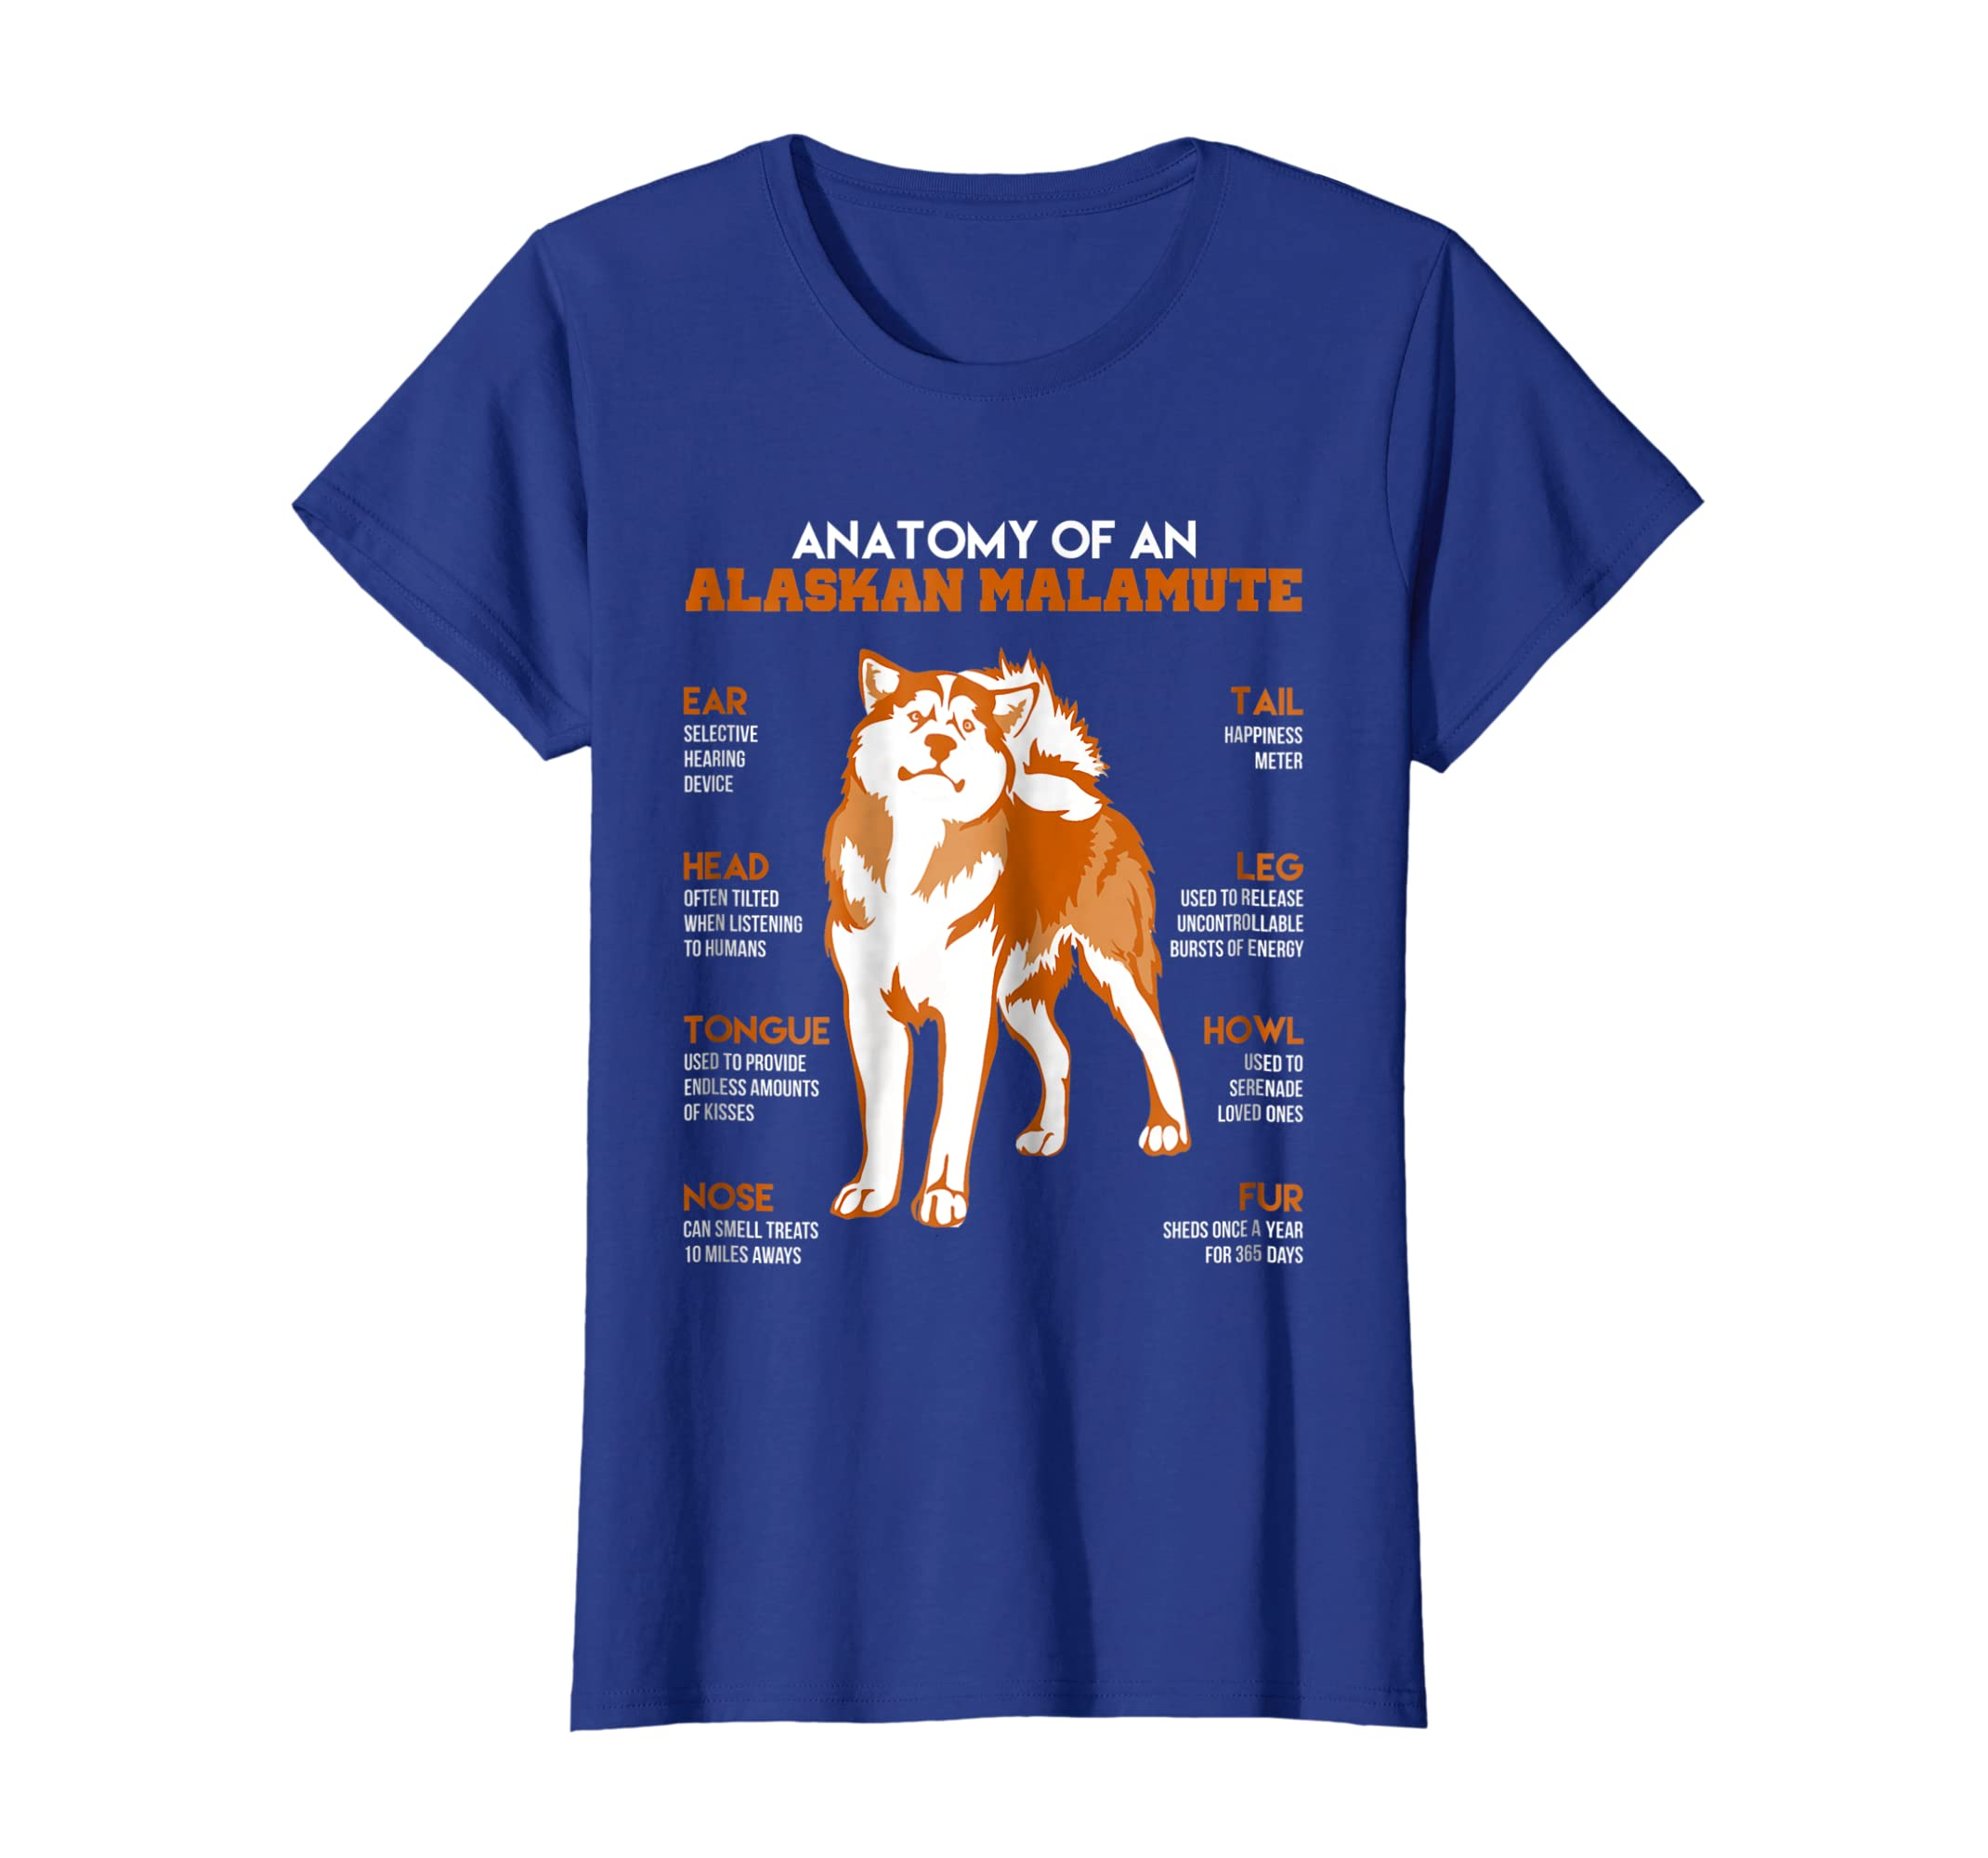 Amazon Anatomy Of An Alaskan Malamute Dogs T Shirt Funny Gift